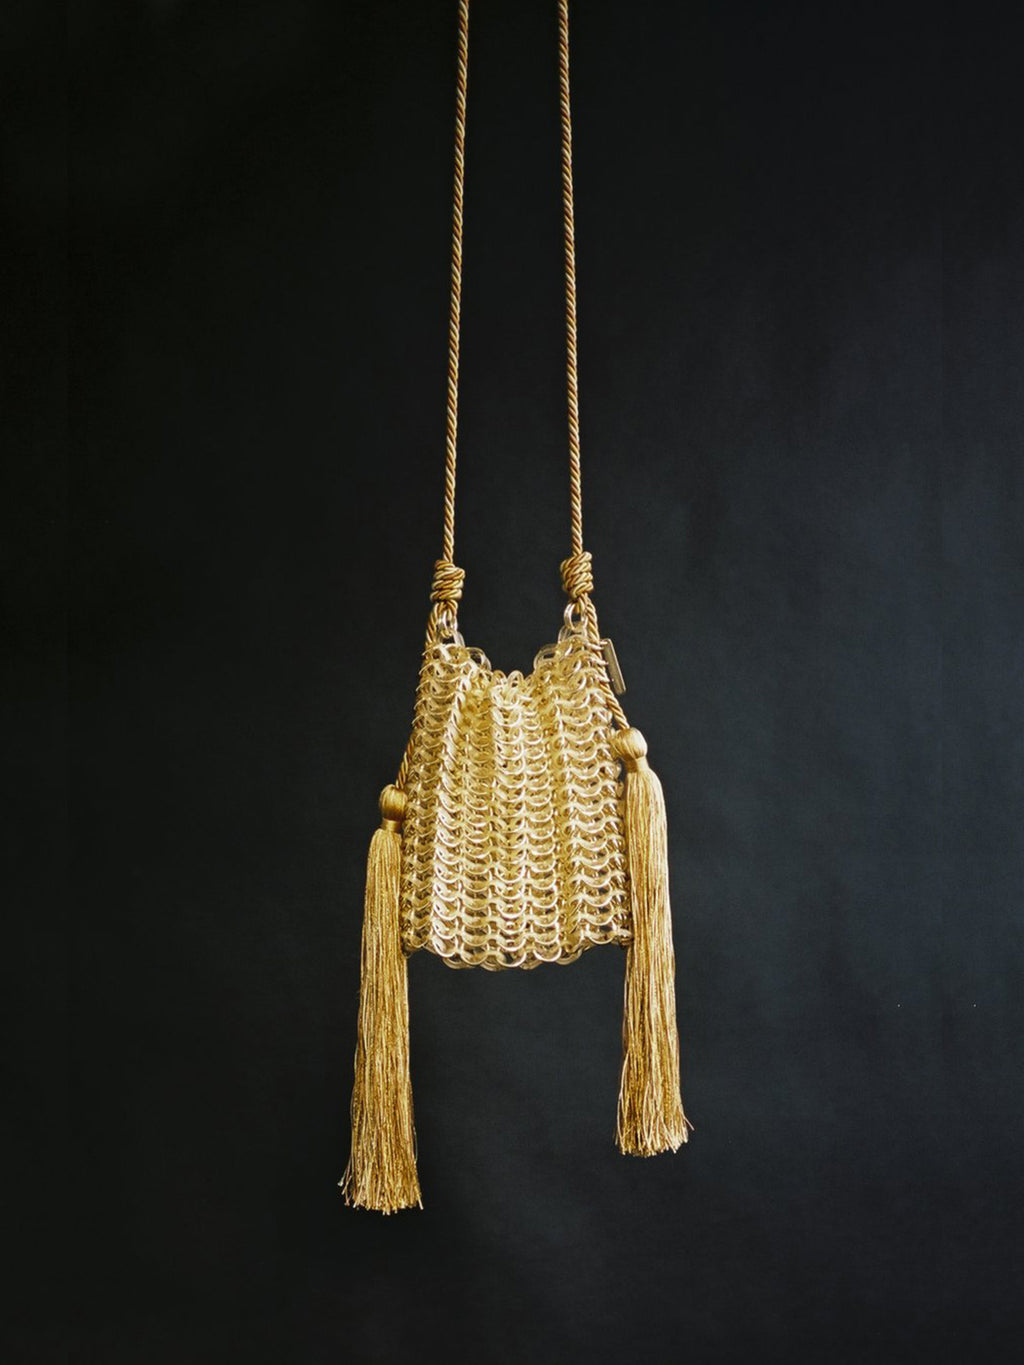 Luisella Shell Bag | Light Amber